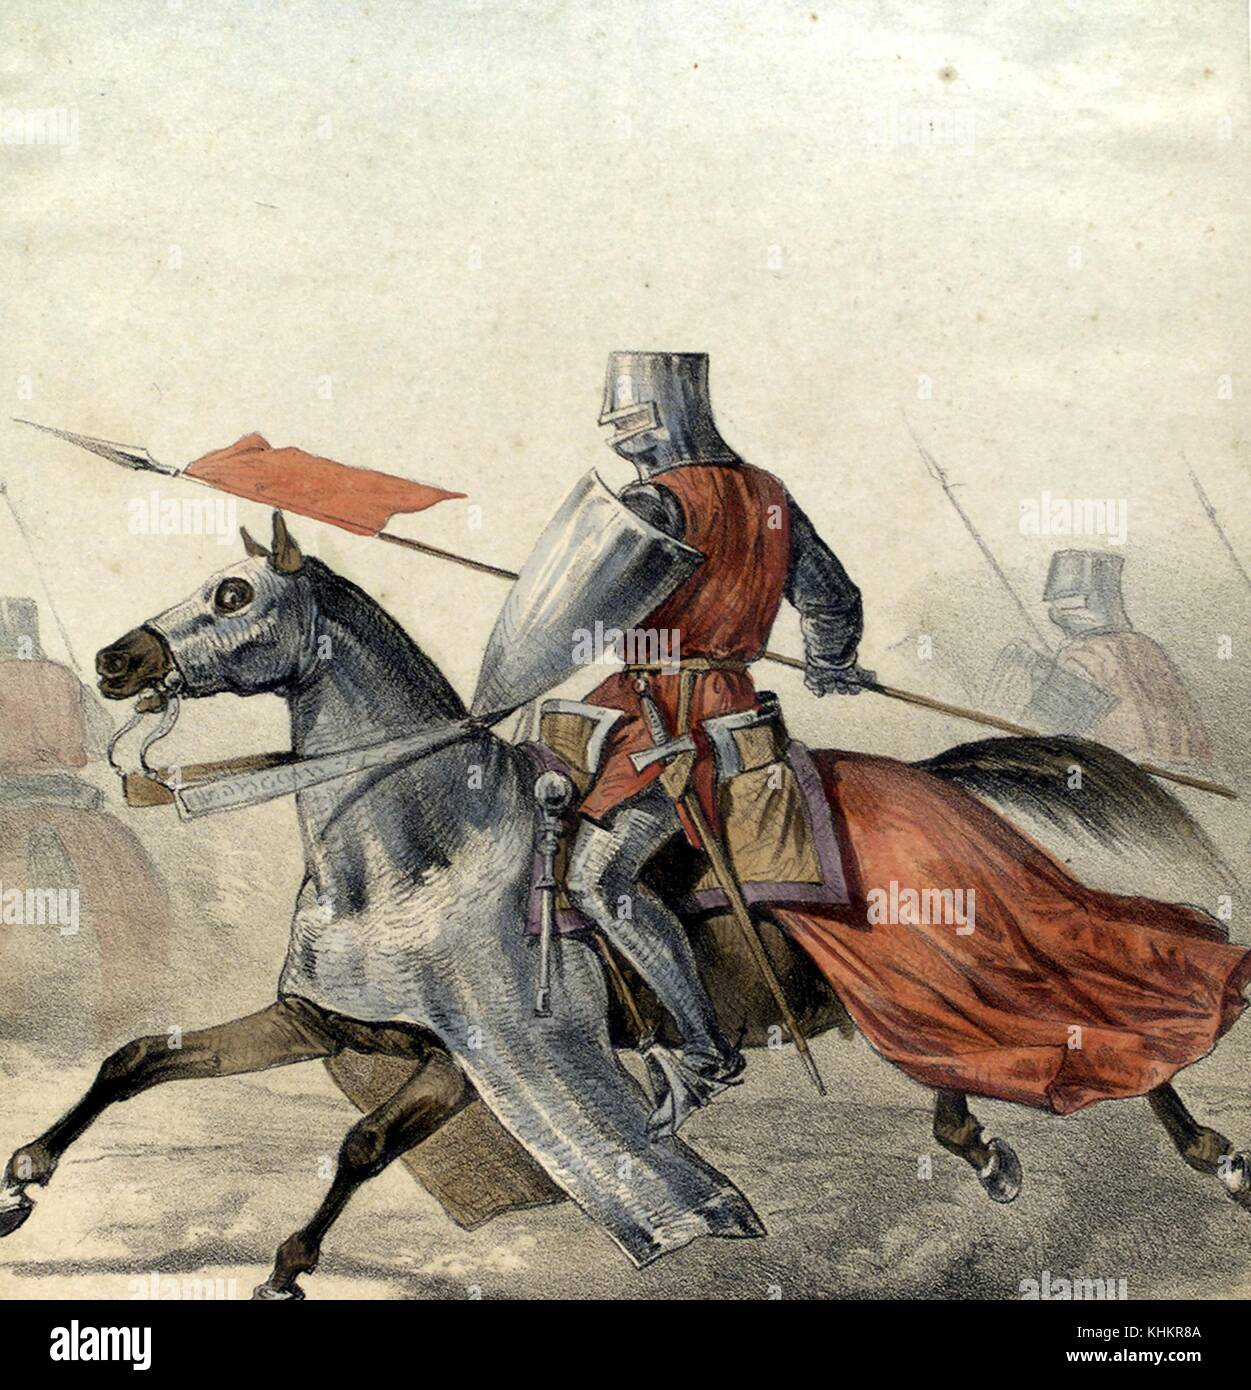 Color lithograph depicting a Spanish Hombre de Armas (Man of Arms) from 1300, on horseback, both in full armor, - Stock Image